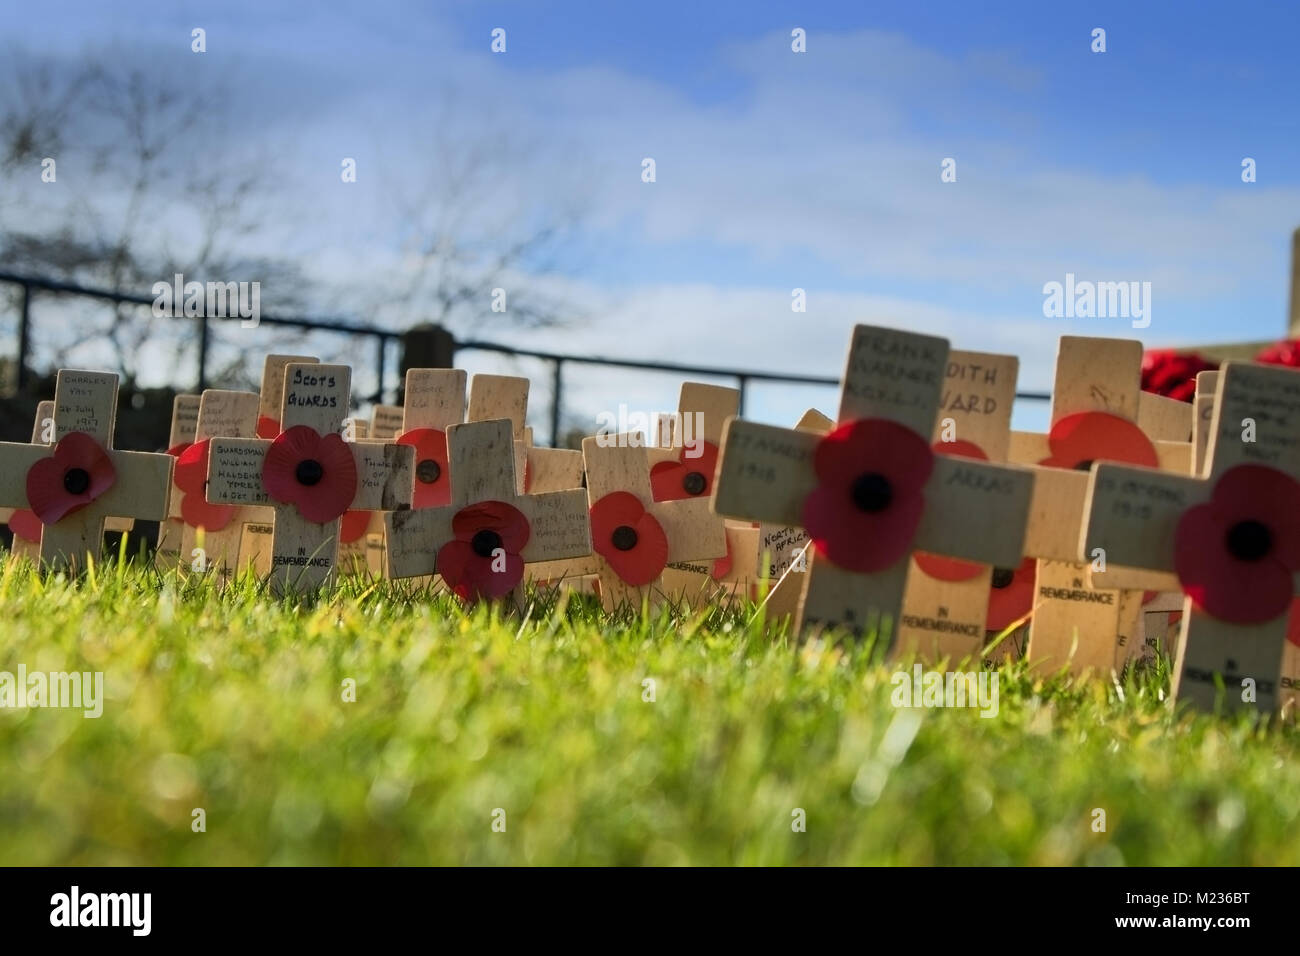 Remembrance day red Poppies pinned to small wooden crosses near the war memorial at Knaresborough Castle,North Yorkshire,England,UK. - Stock Image